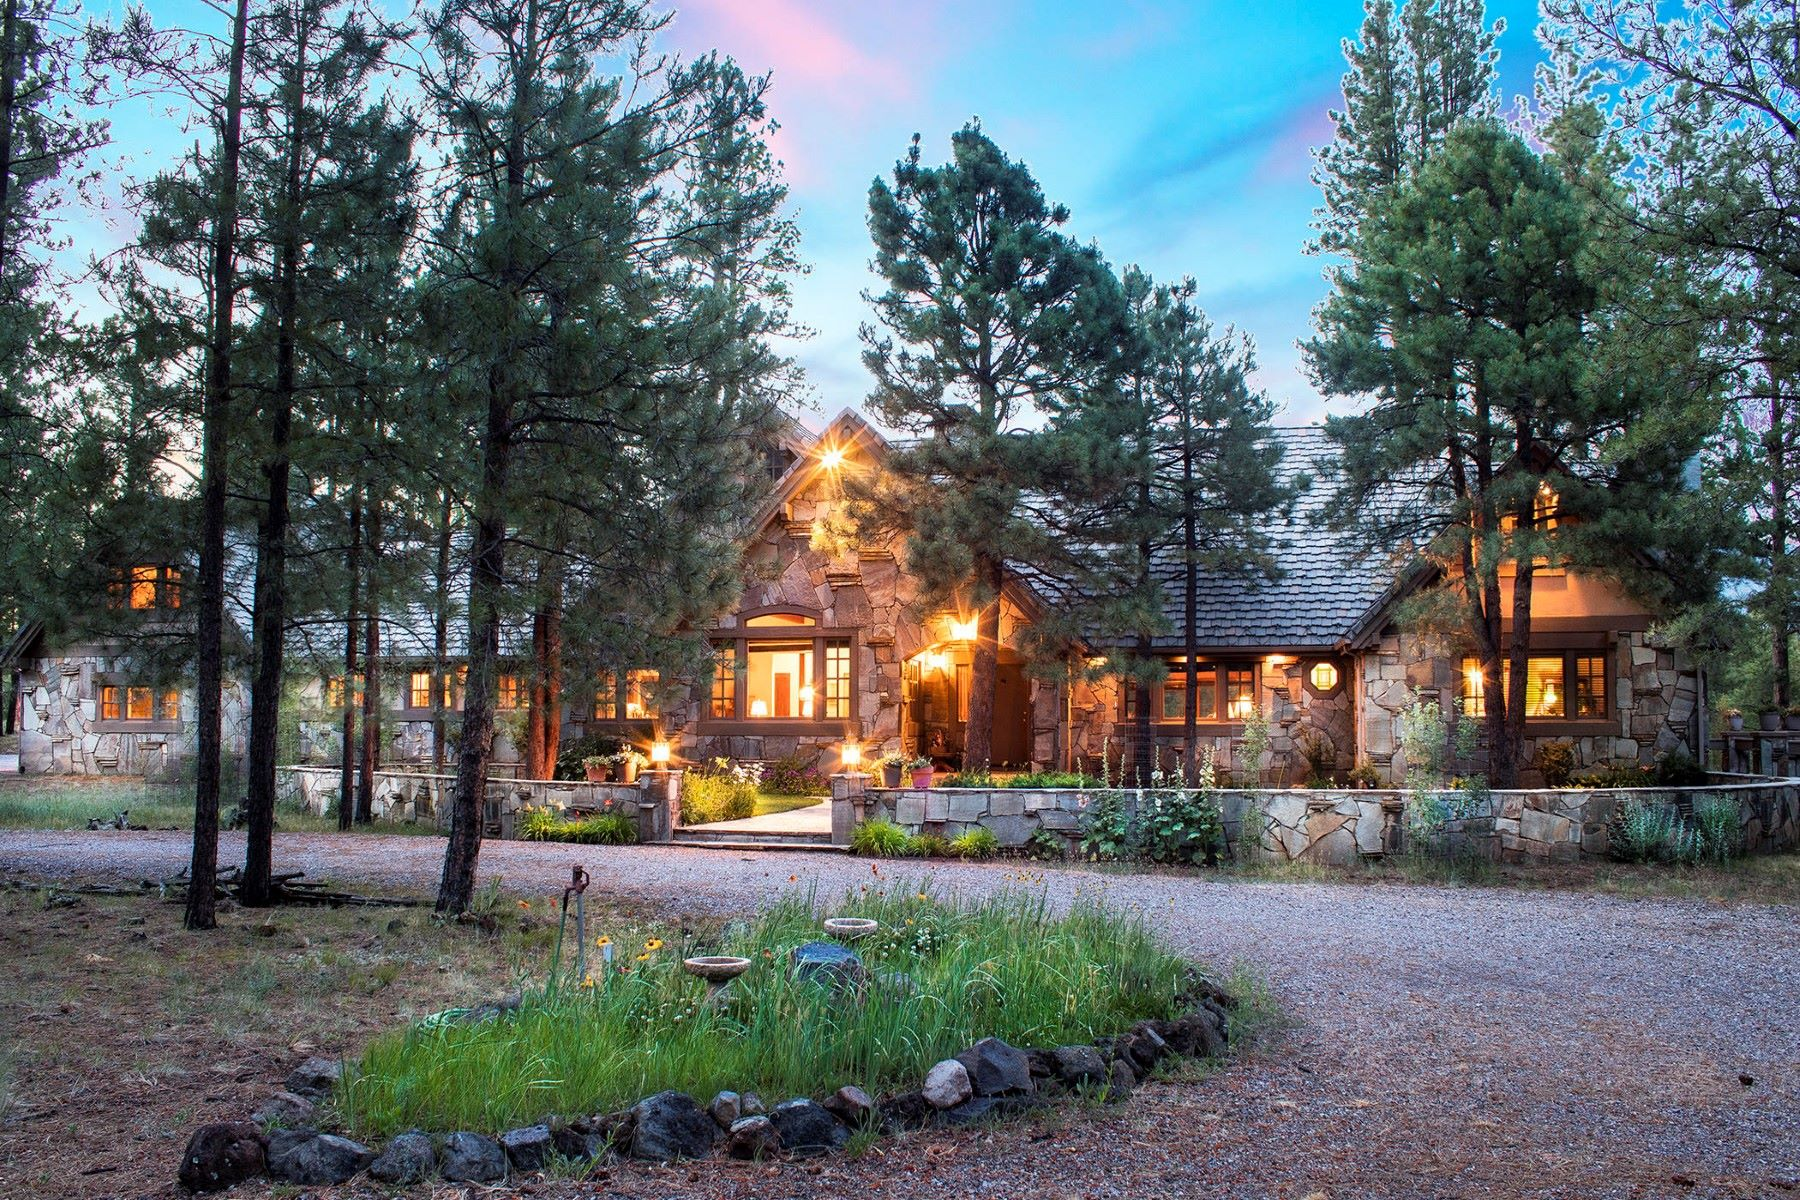 Casa Unifamiliar por un Venta en Extraordinary Land with an exceptional home situated on 26 acres. 4100 Hidden Hollow RD, Flagstaff, Arizona, 86001 Estados Unidos